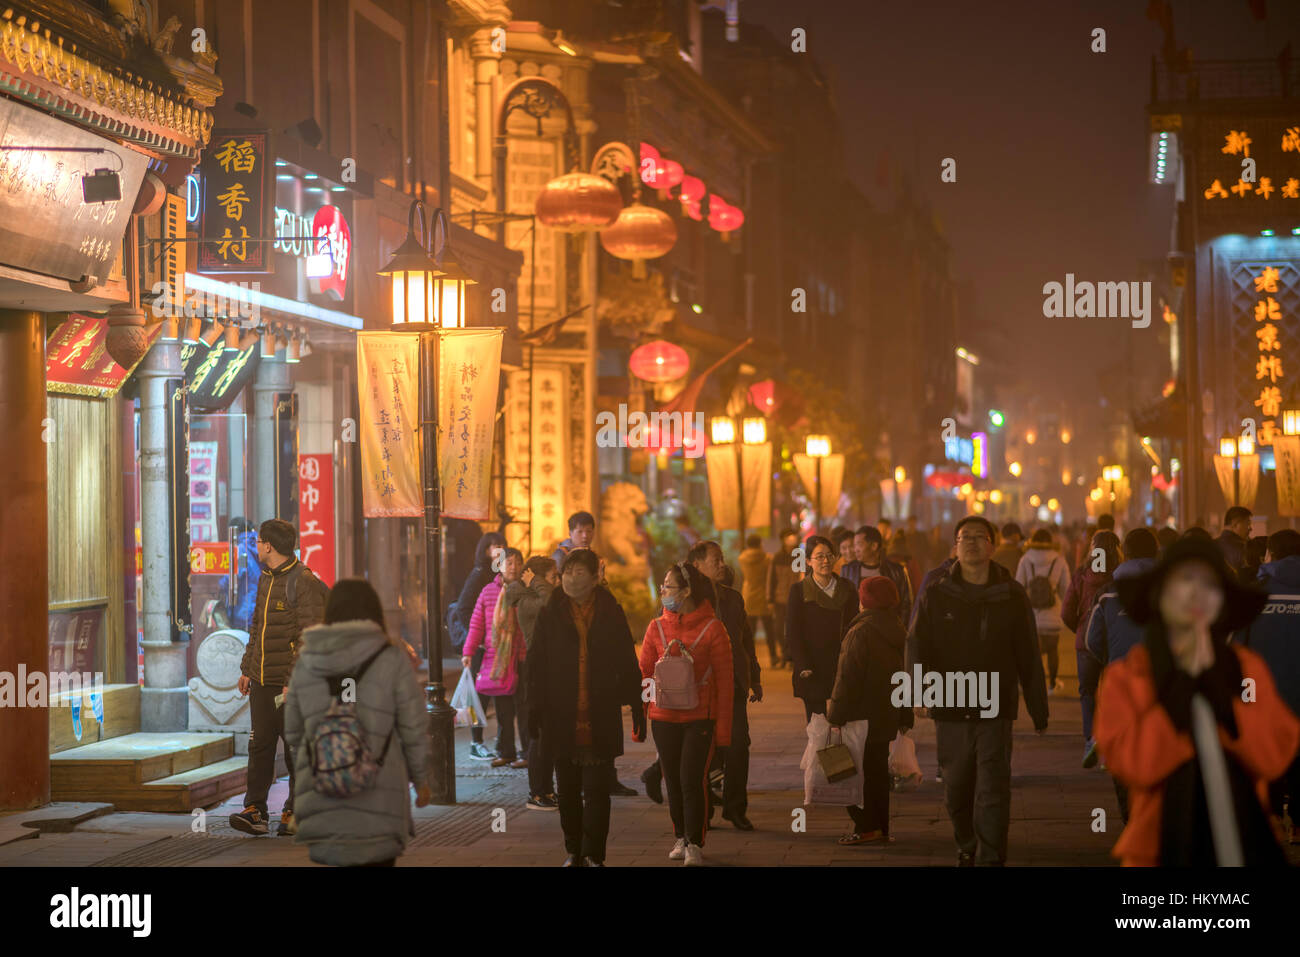 Evening at the  Qianmen Street pedestrian area, Beijing, People's Republic of China, Asia Stock Photo